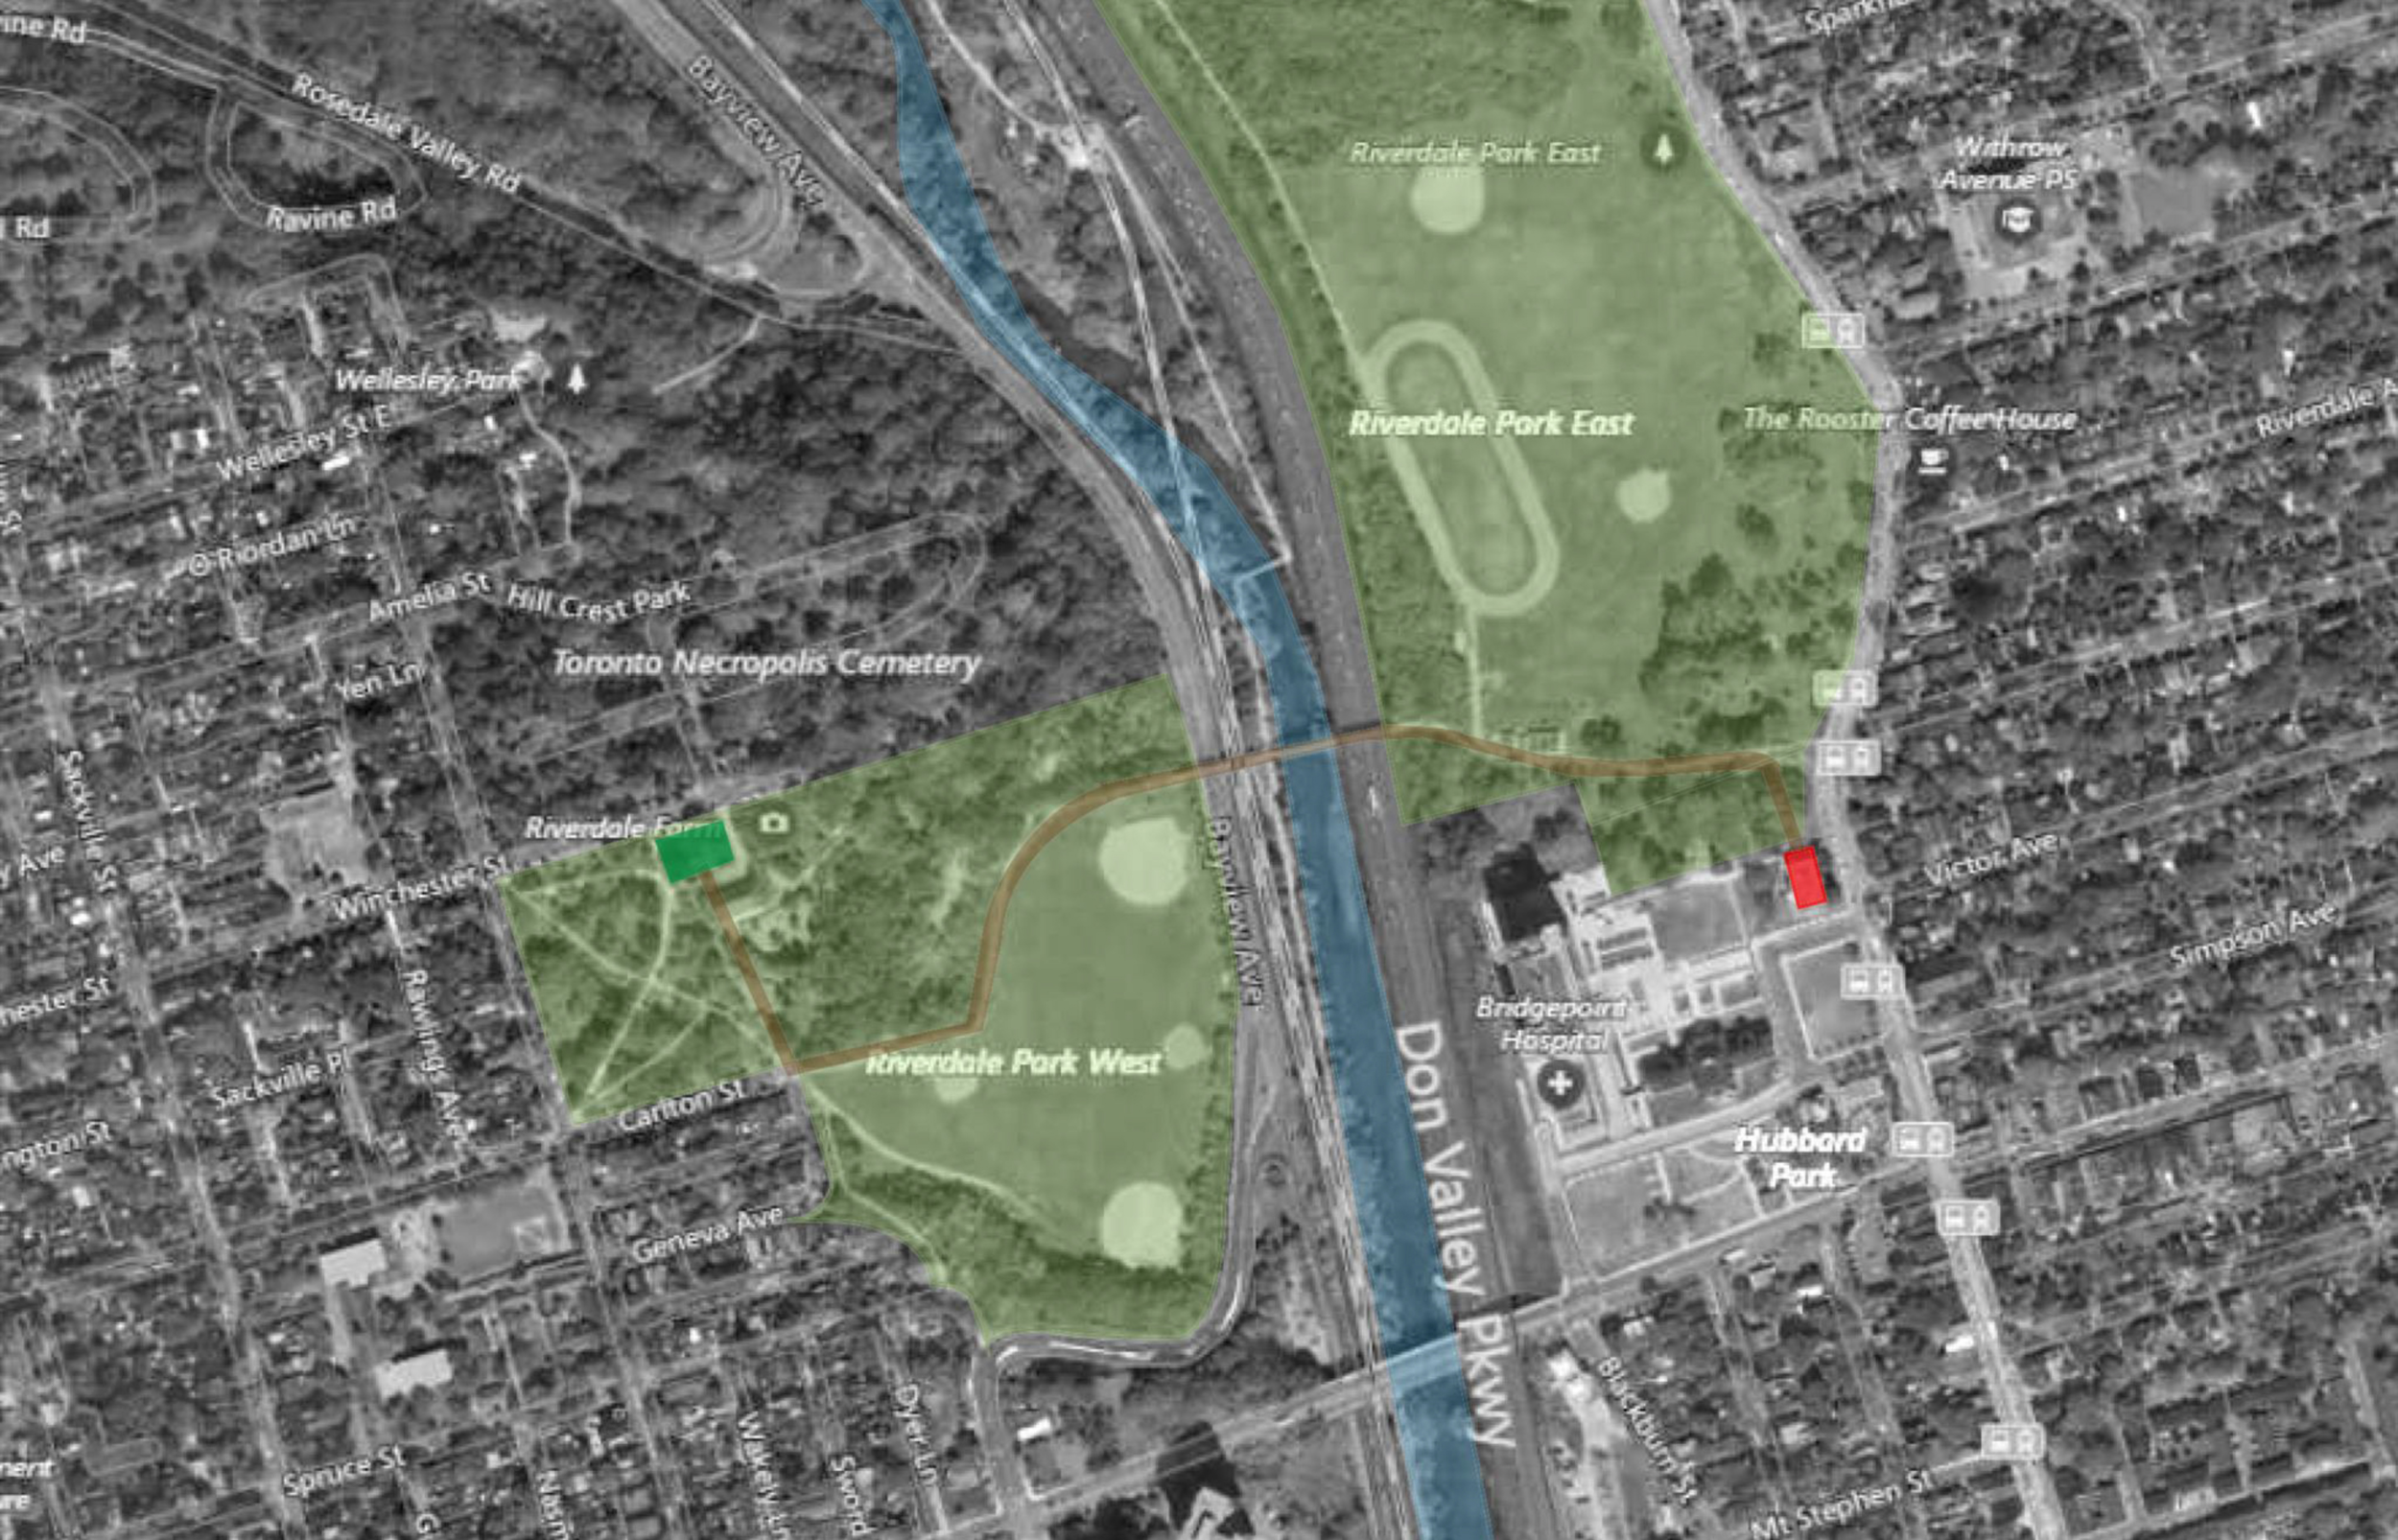 Canada_Toronto_Daycare_Design_architect_Riverdale Toronto Park-map.png